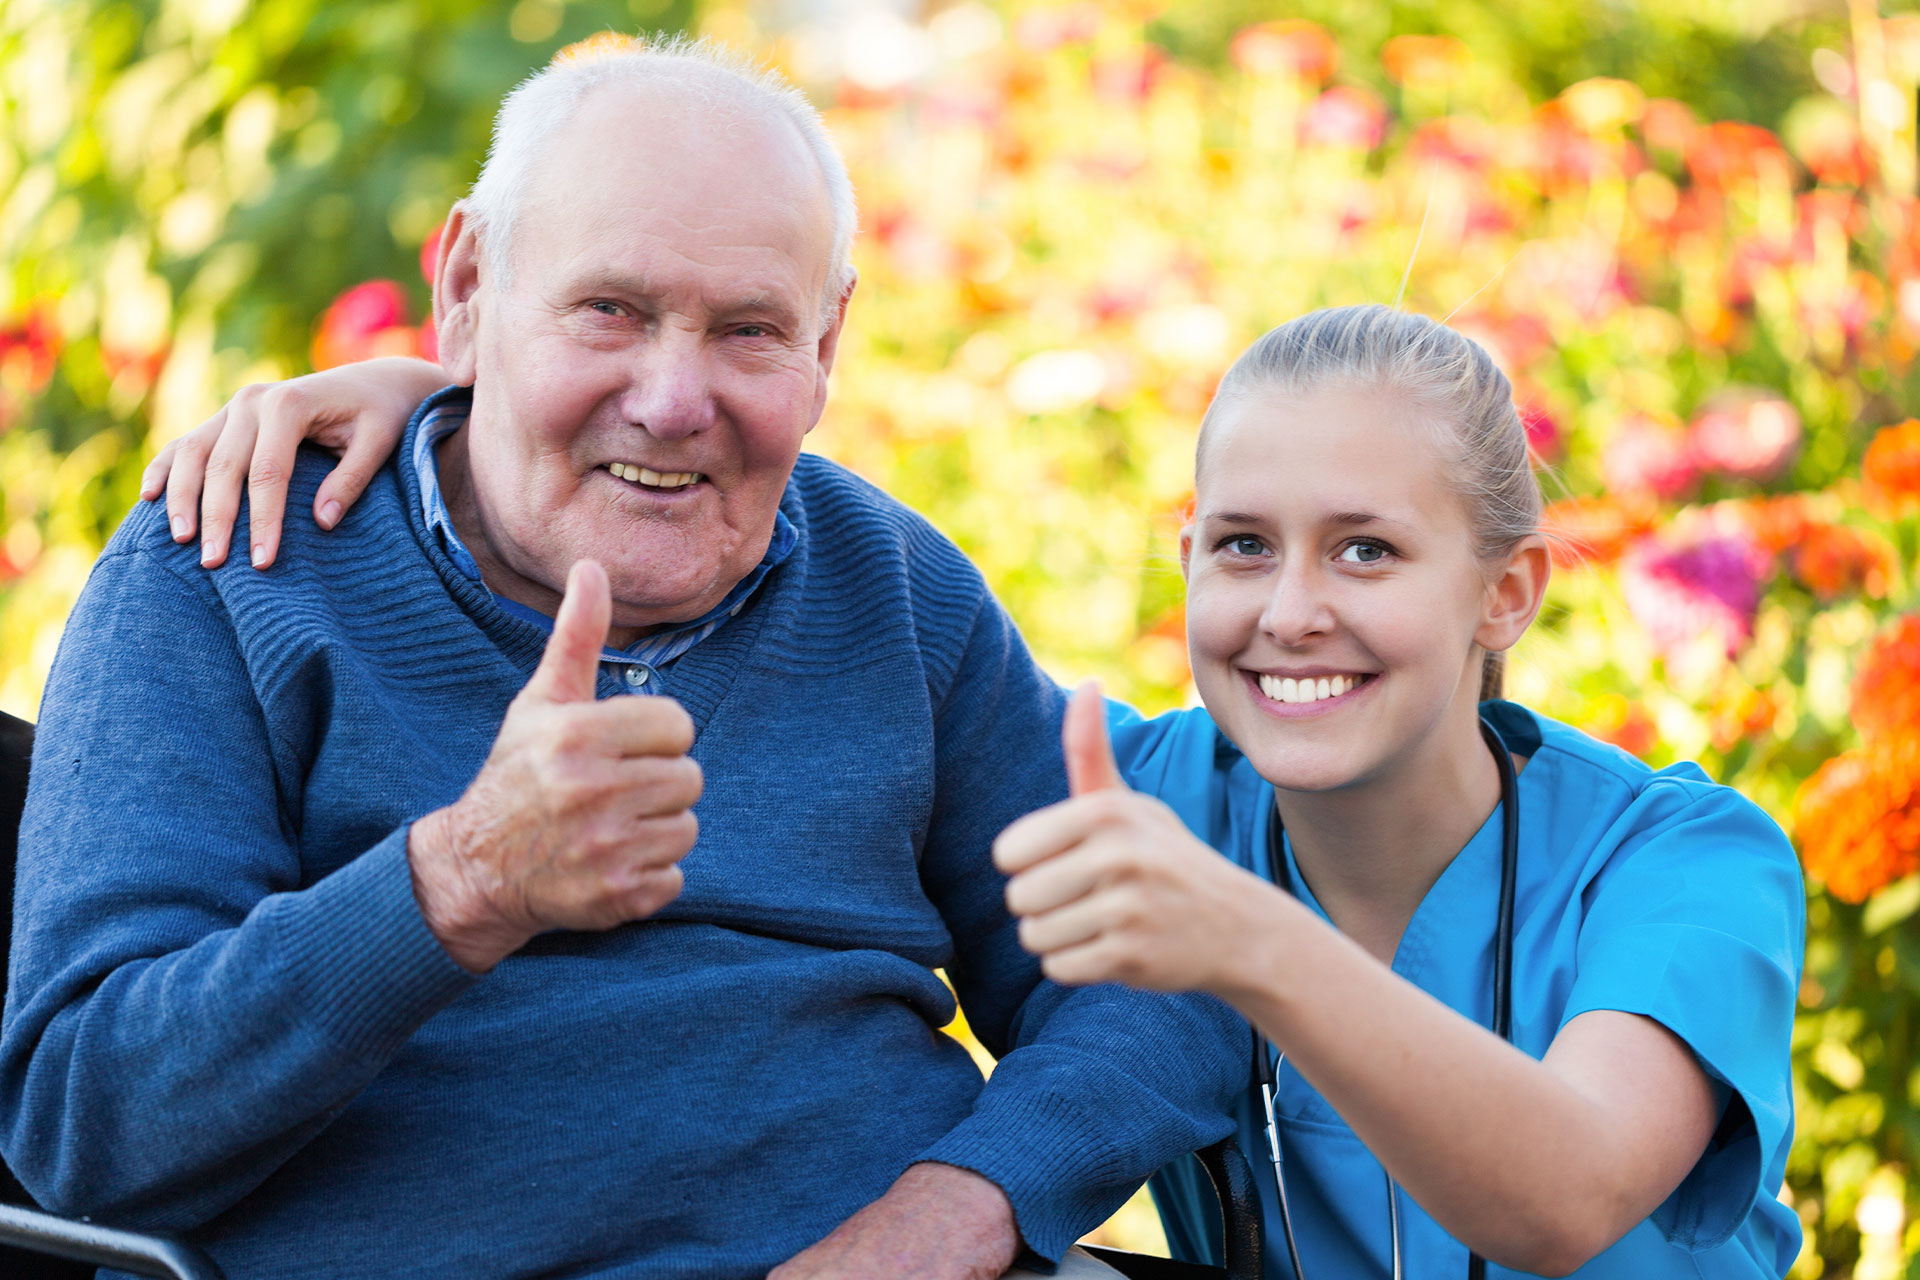 Nurse and patient giving a thumbs up to getting vaccinated